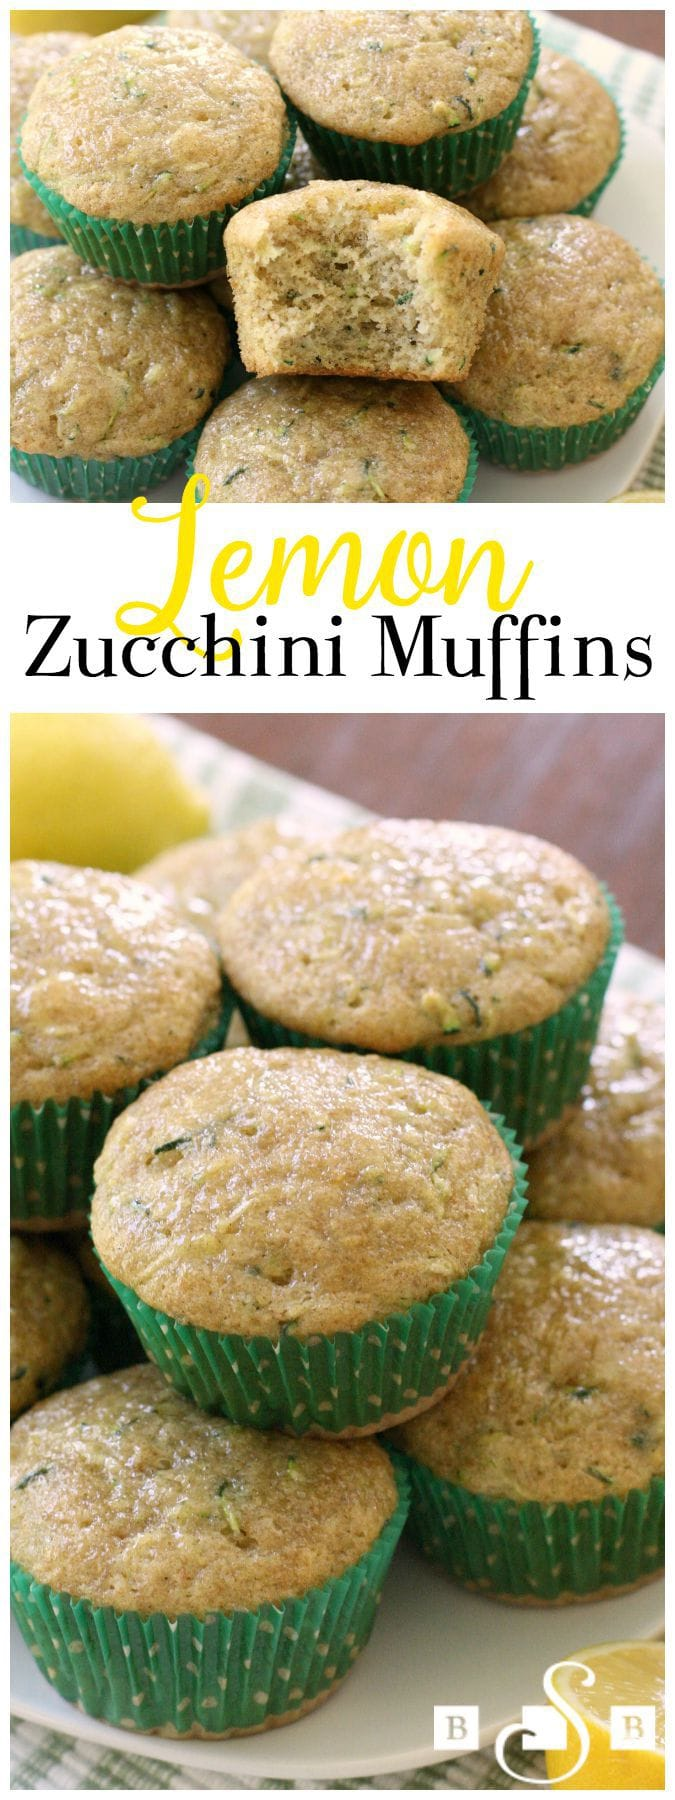 Lemon Zucchini Muffins are a favorite when the garden is bursting with fresh zucchini! More delicate than zucchini bread, you'll love the fresh, bright flavor of added lemon and cinnamon too.  Perfect #zucchini #recipe from Butter With A Side of Bread